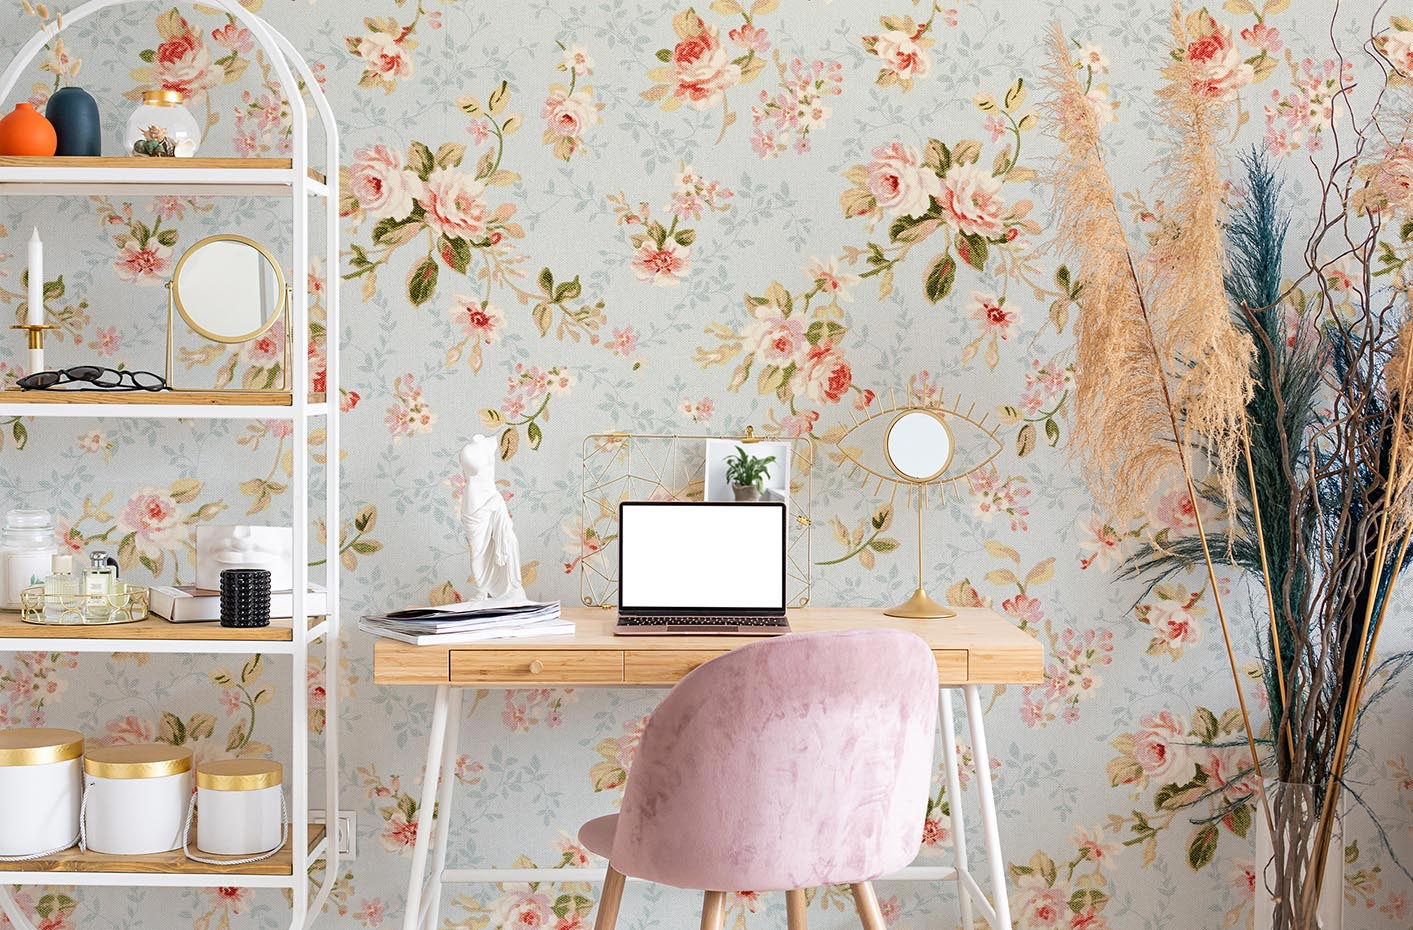 Floral pattern mural